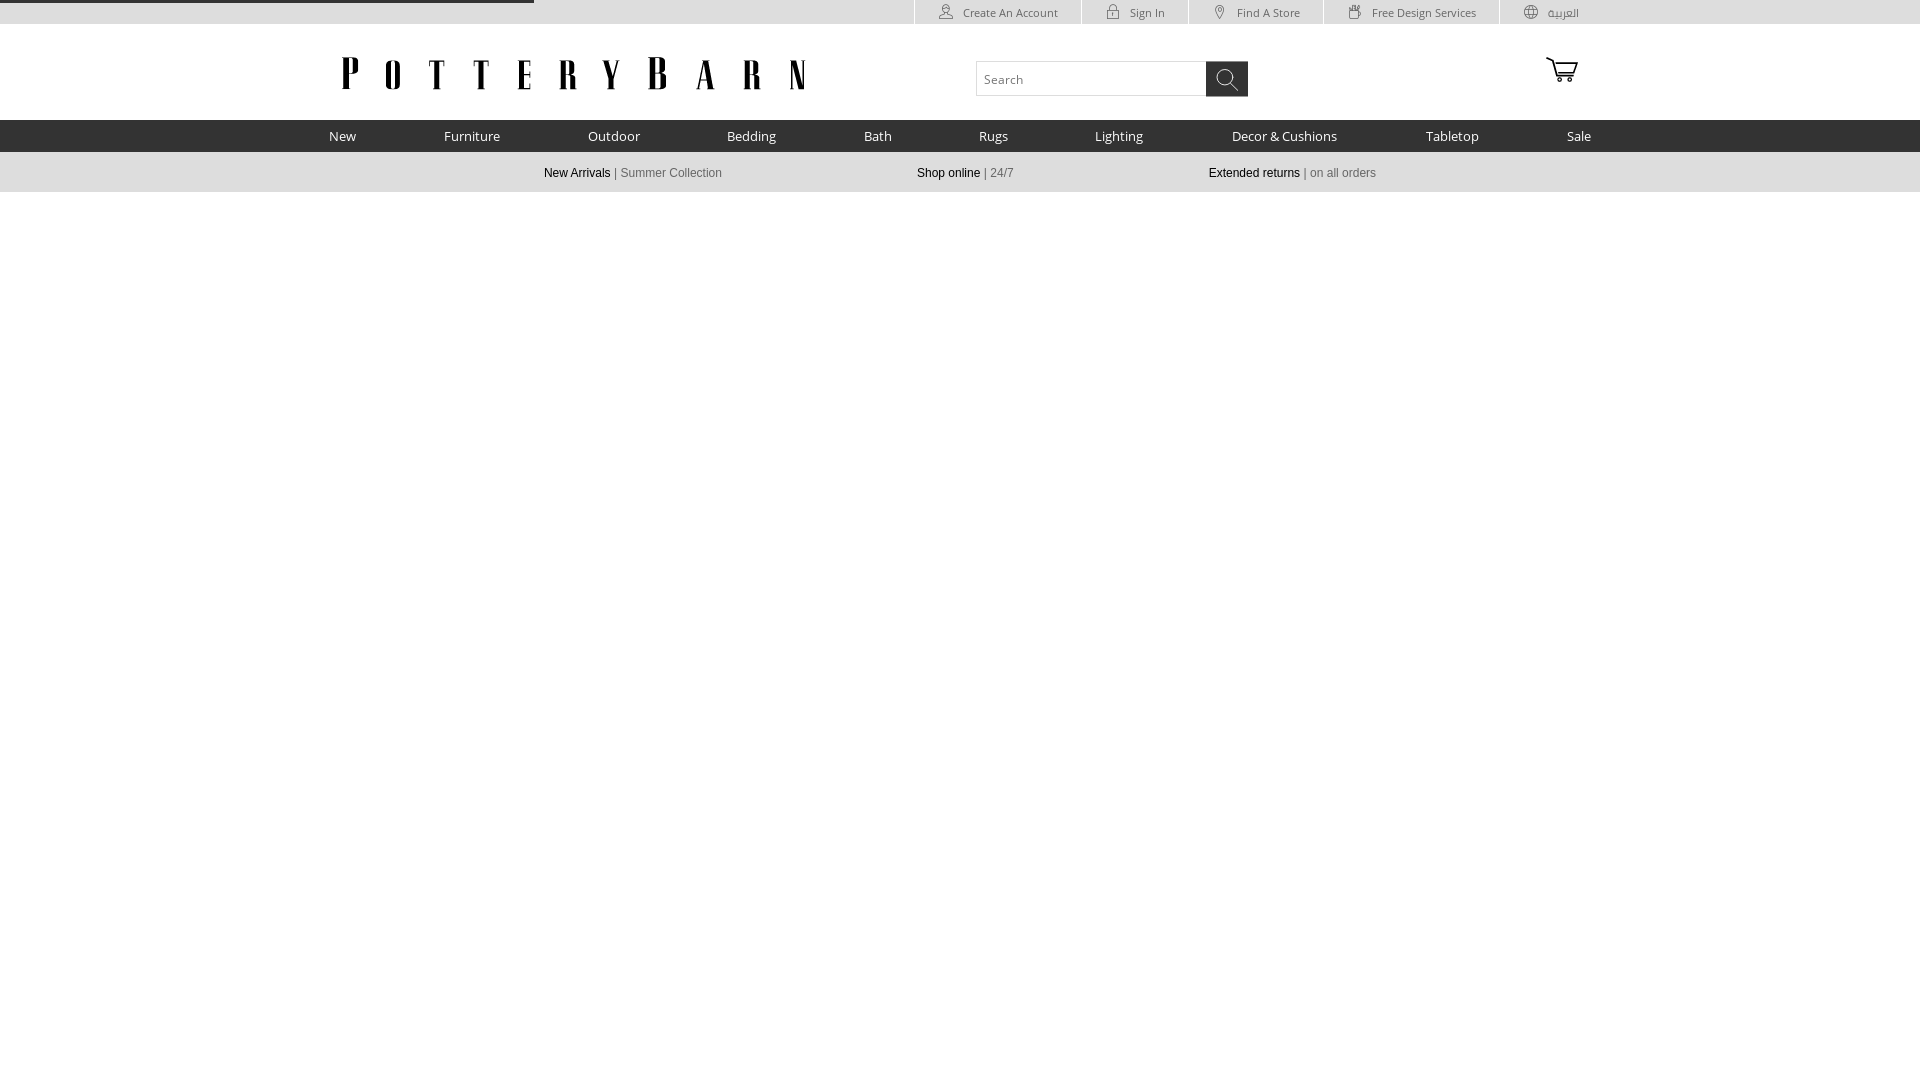 Pottery Barn AE SA KW website